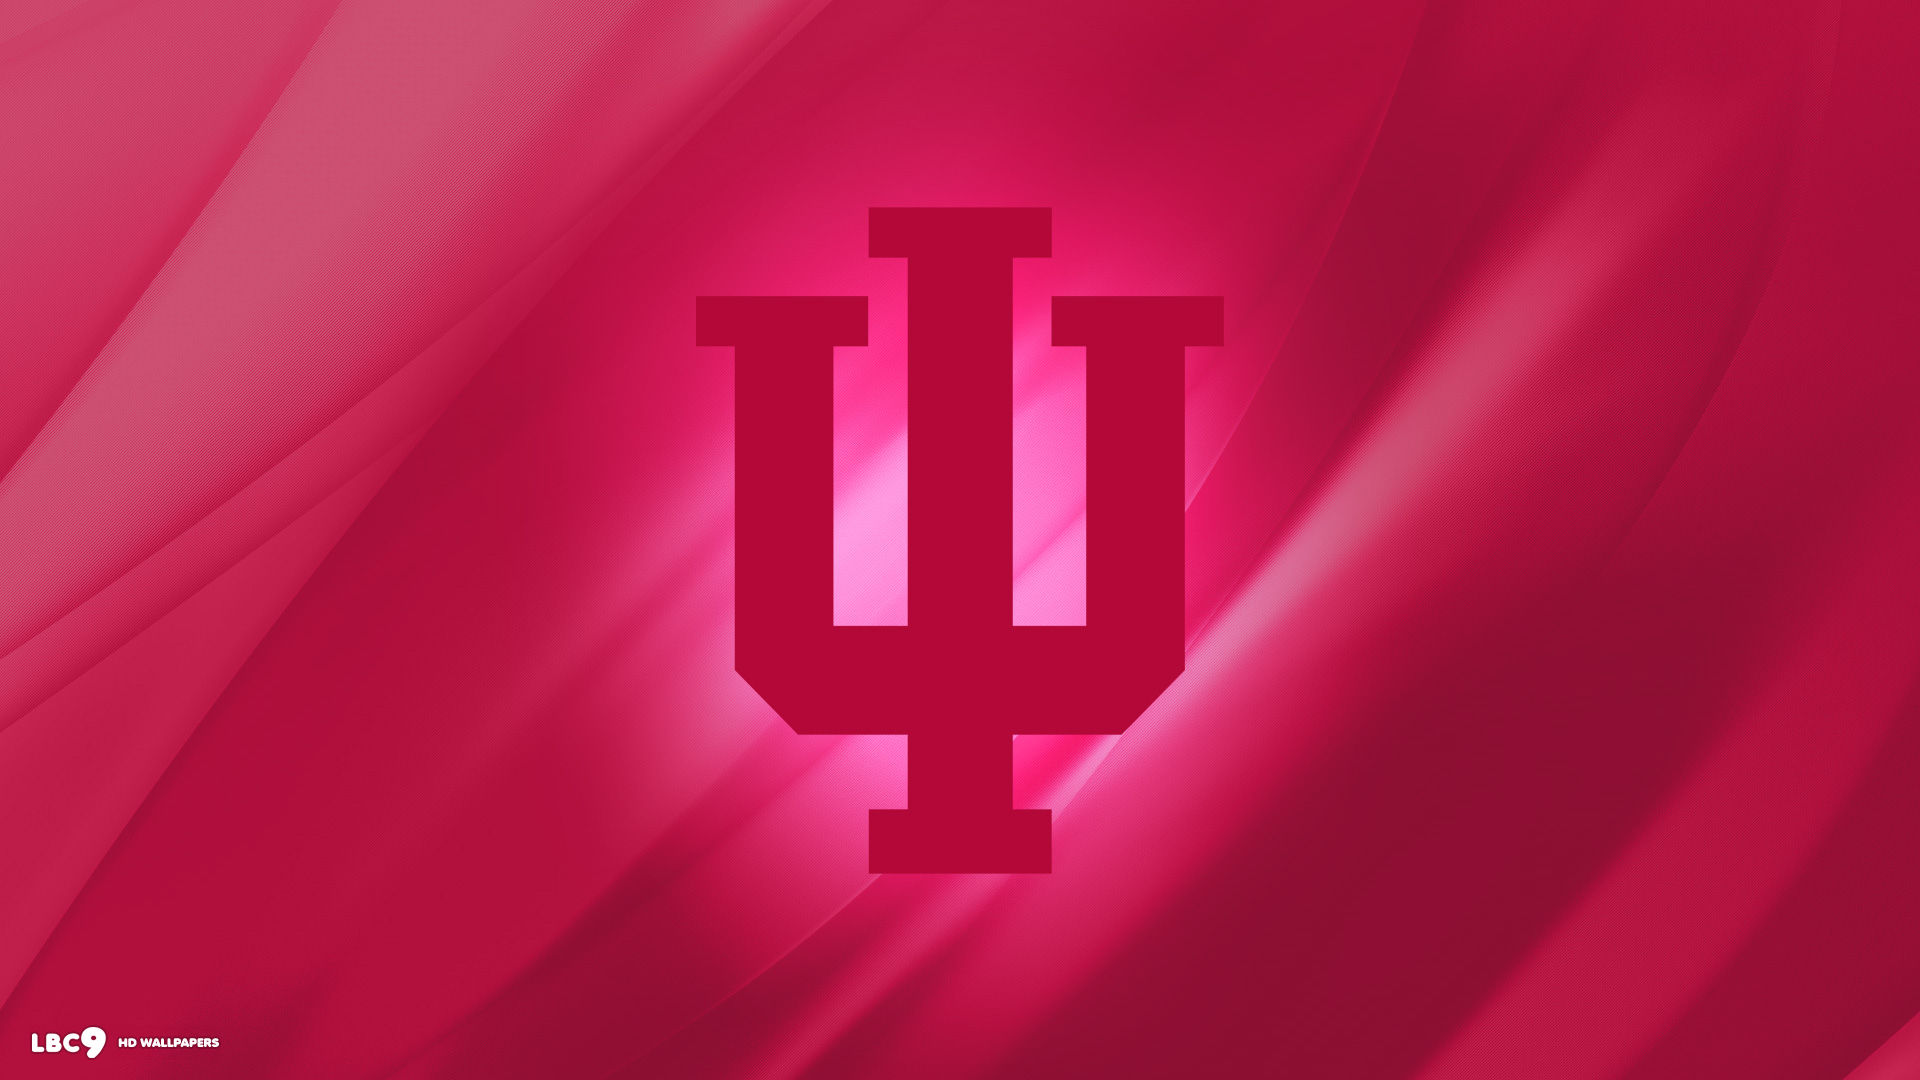 indiana hoosiers wallpaper 11 college athletics hd backgrounds 1920x1080